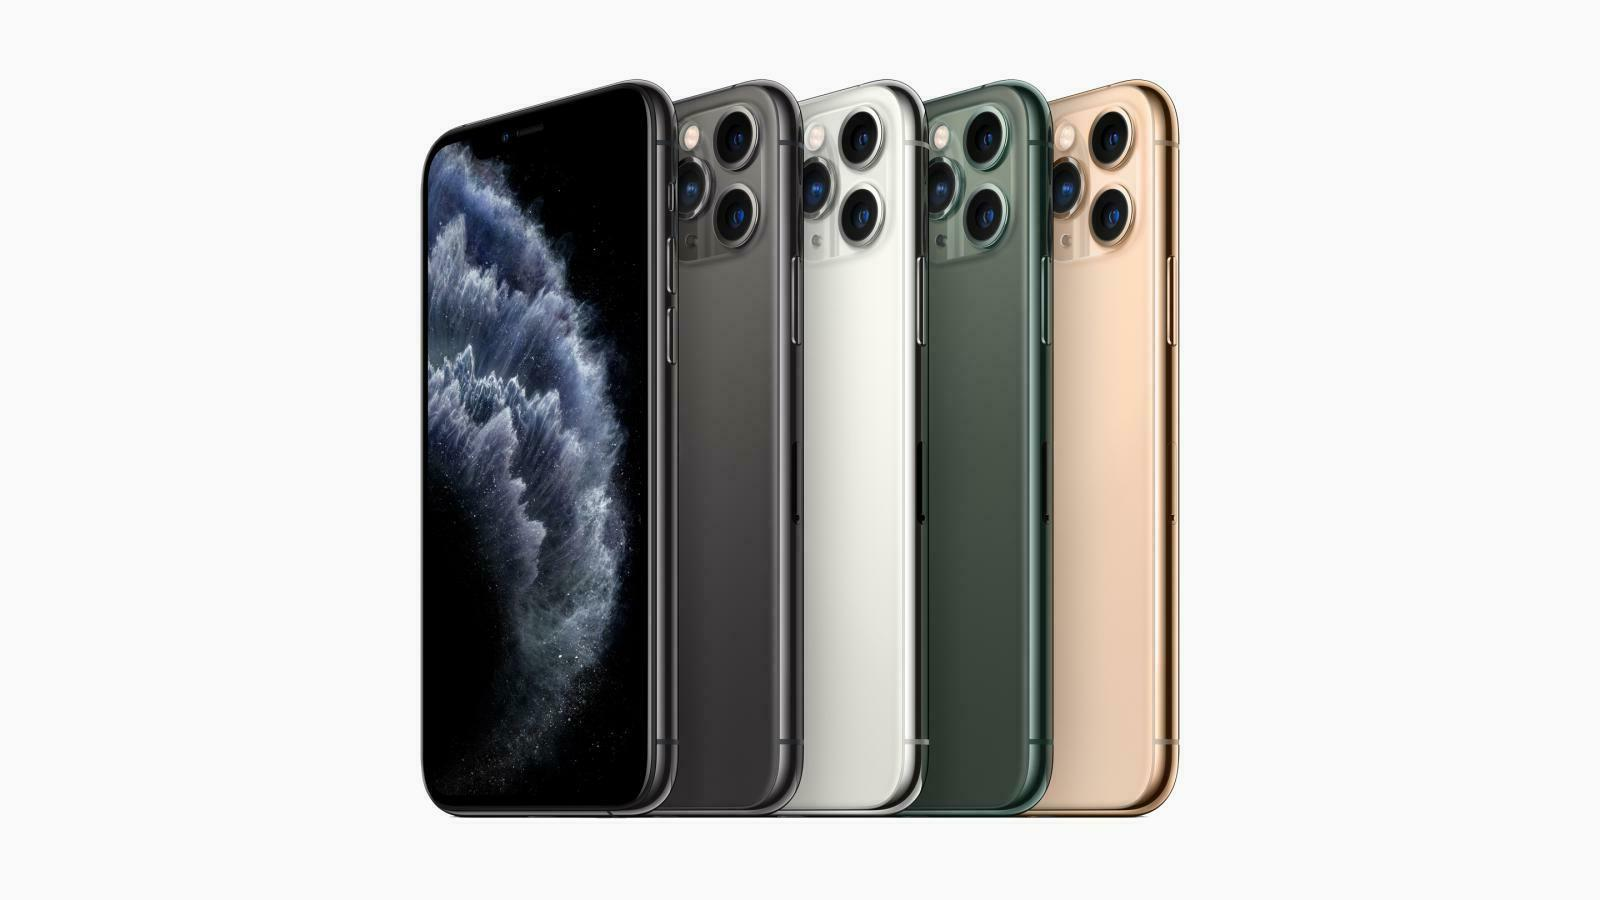 OB Apple iPhone 11 Pro Max 64/256/512 GB Gold, Silver, Gray